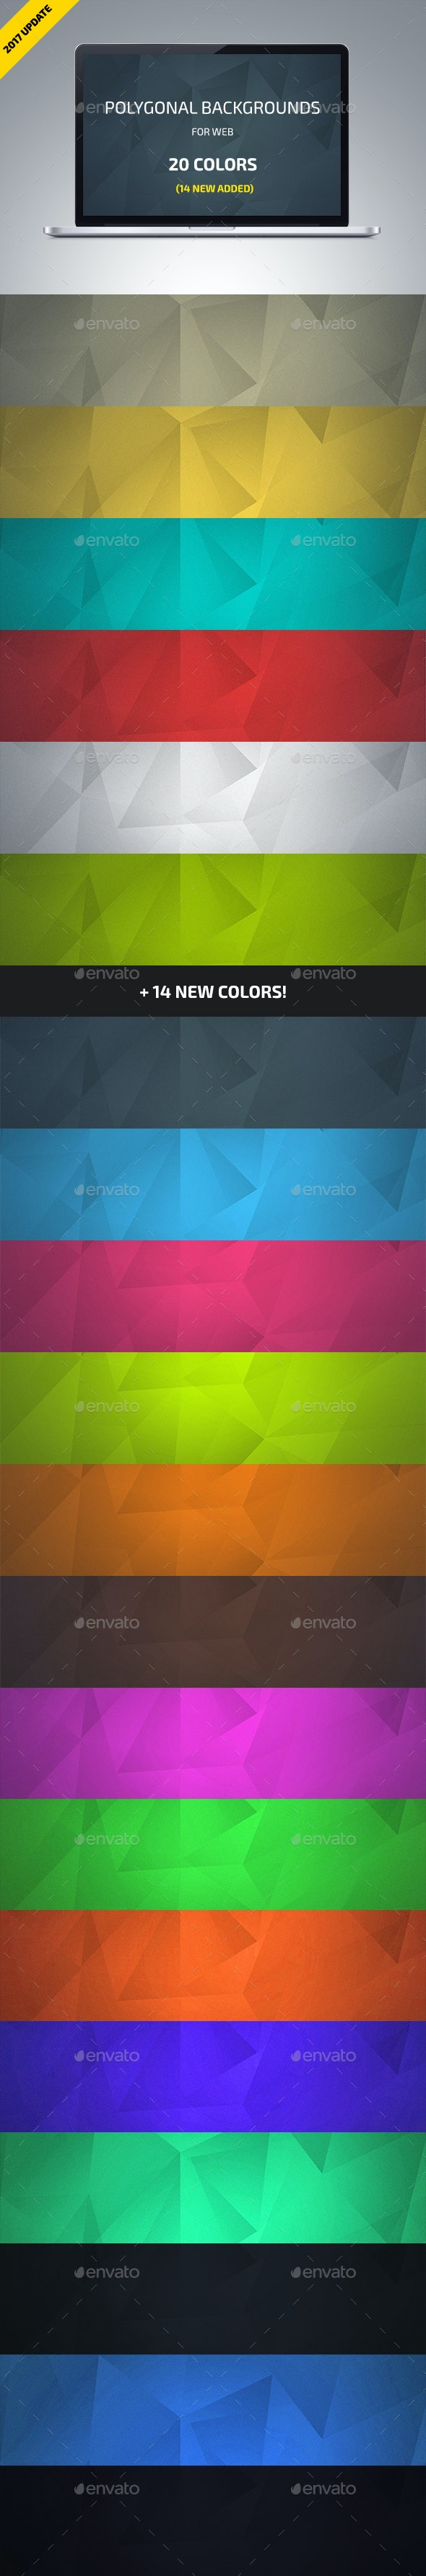 Polygonal Backgrounds (Updated 2017) - Abstract Backgrounds